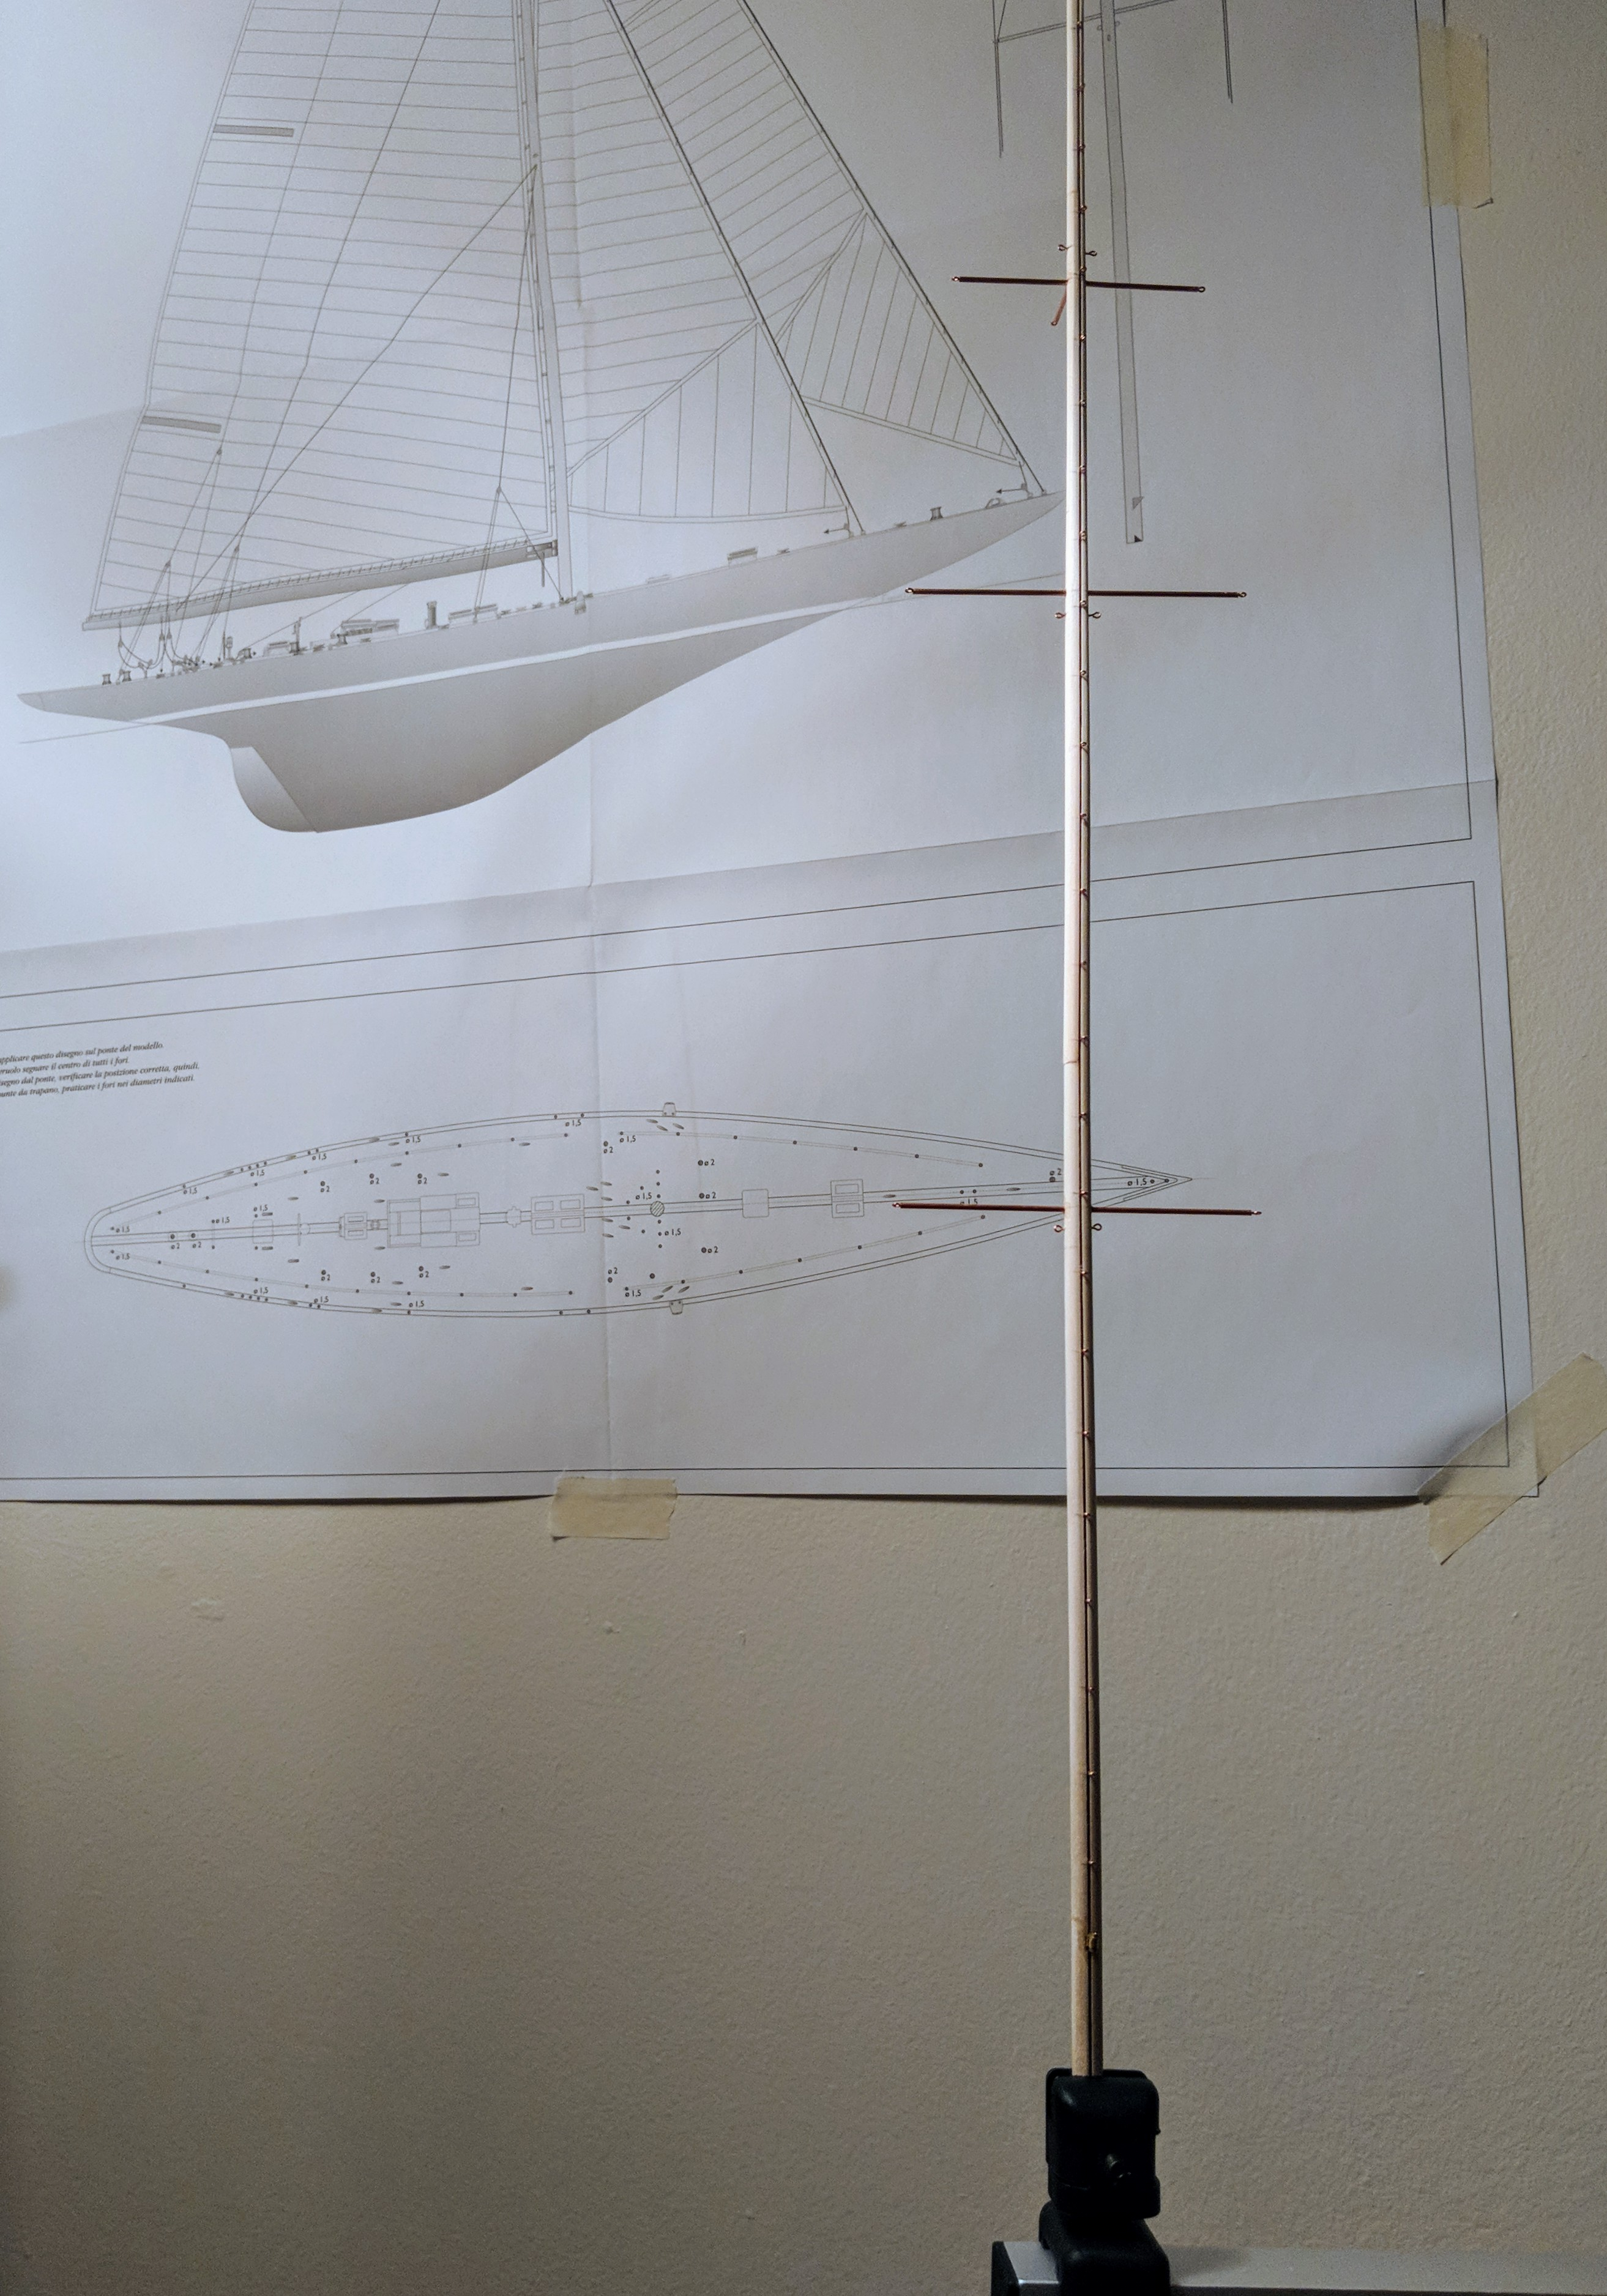 Mast Boom Keel Americas Cup 1934 J Class Endeavour Parts Of A Tall Ship For Pinterest And Ultimately